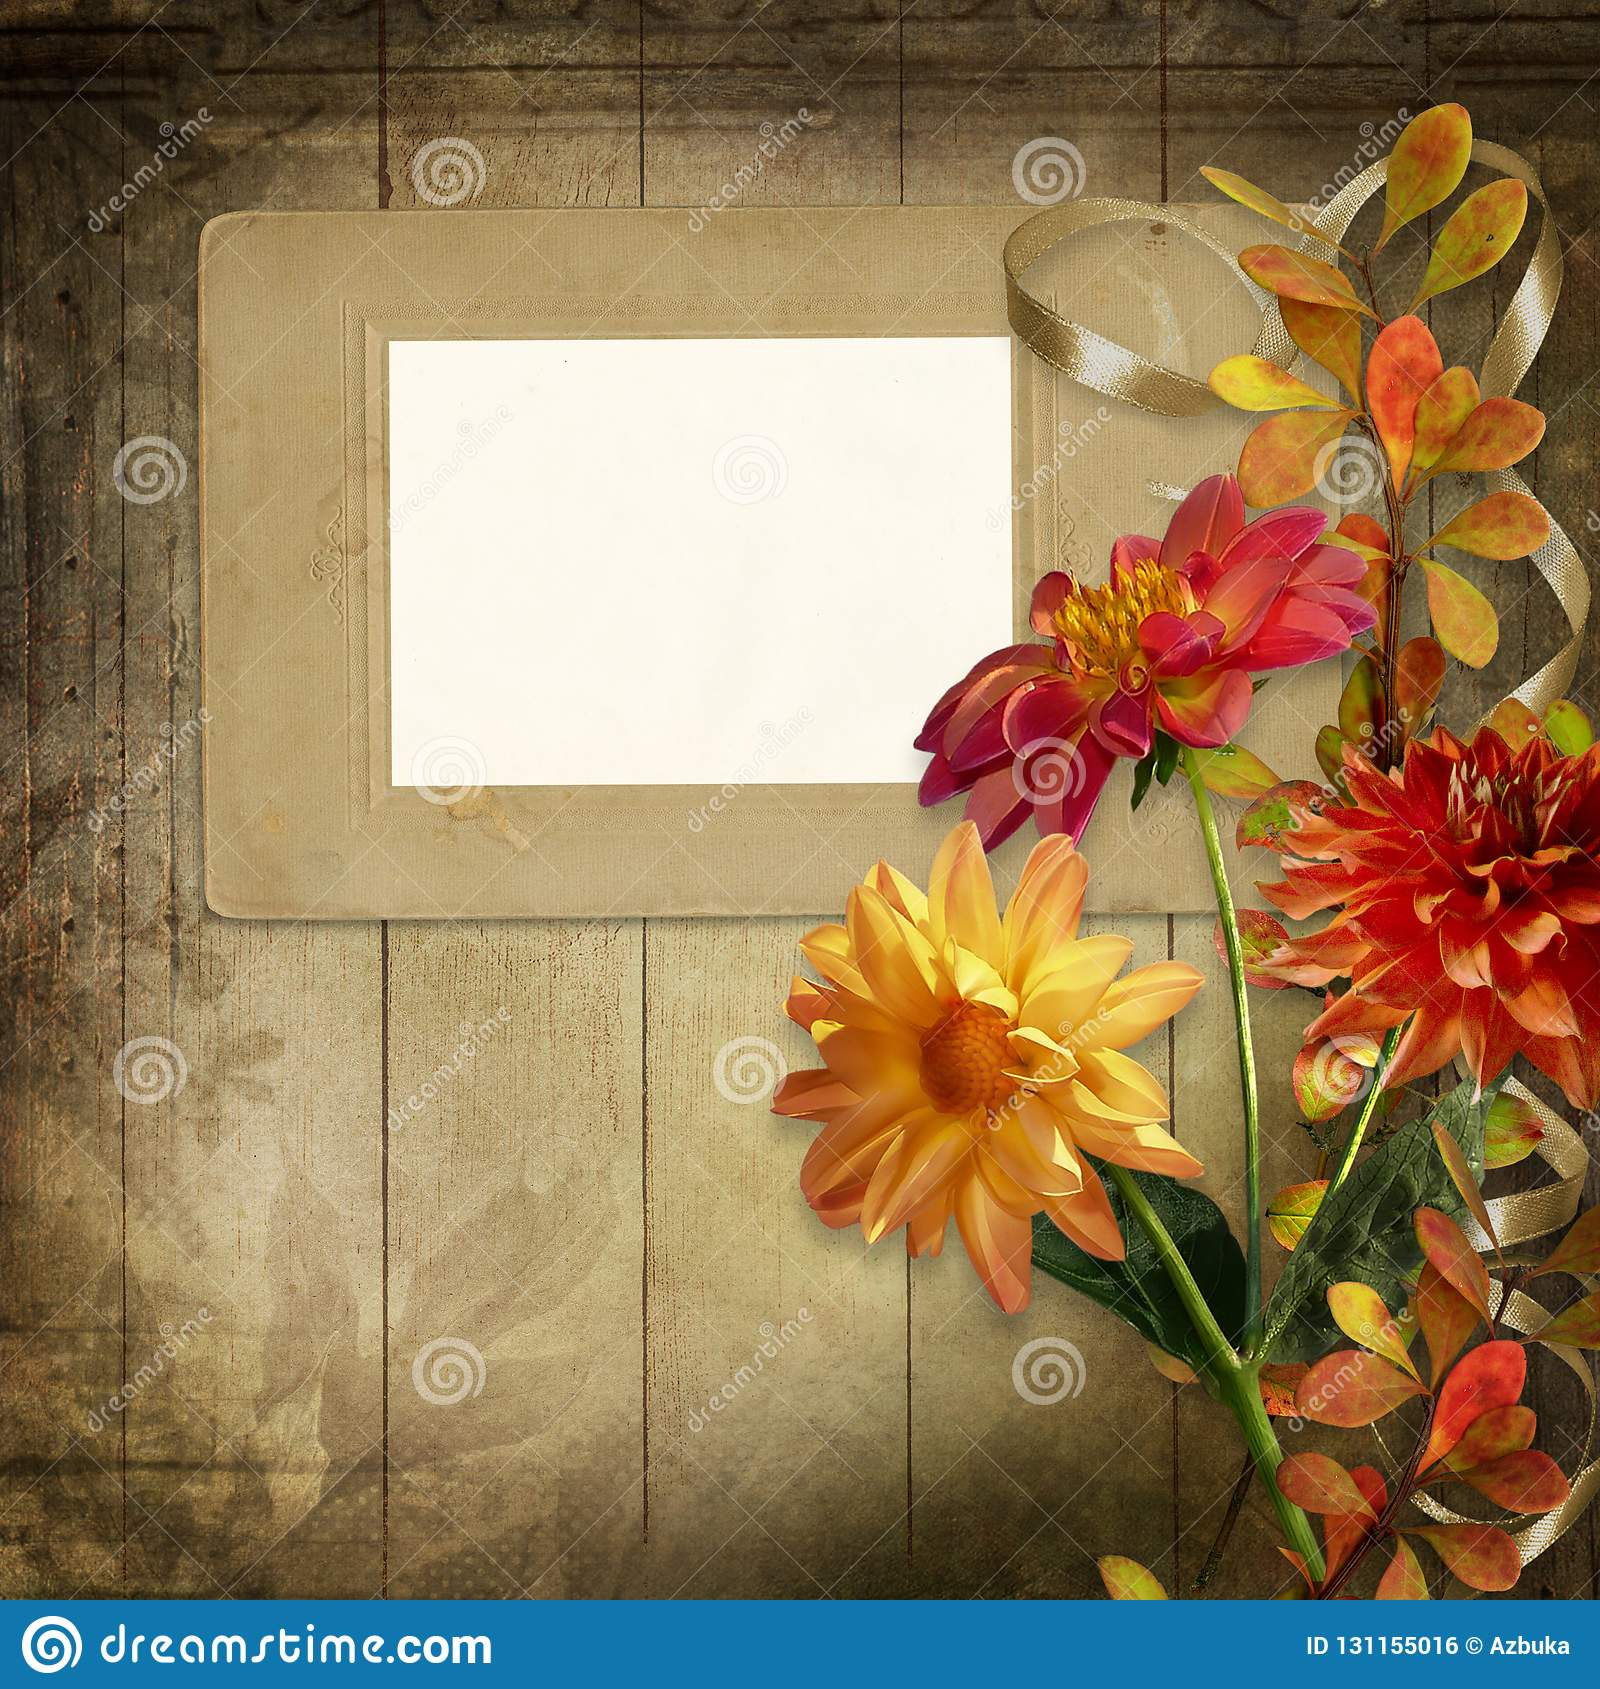 Old Photo Frame With Beautiful Flowers And Ribbon On Vintage Wooden Board Stock Illustration Illustration Of Grunge Happiness 131155016